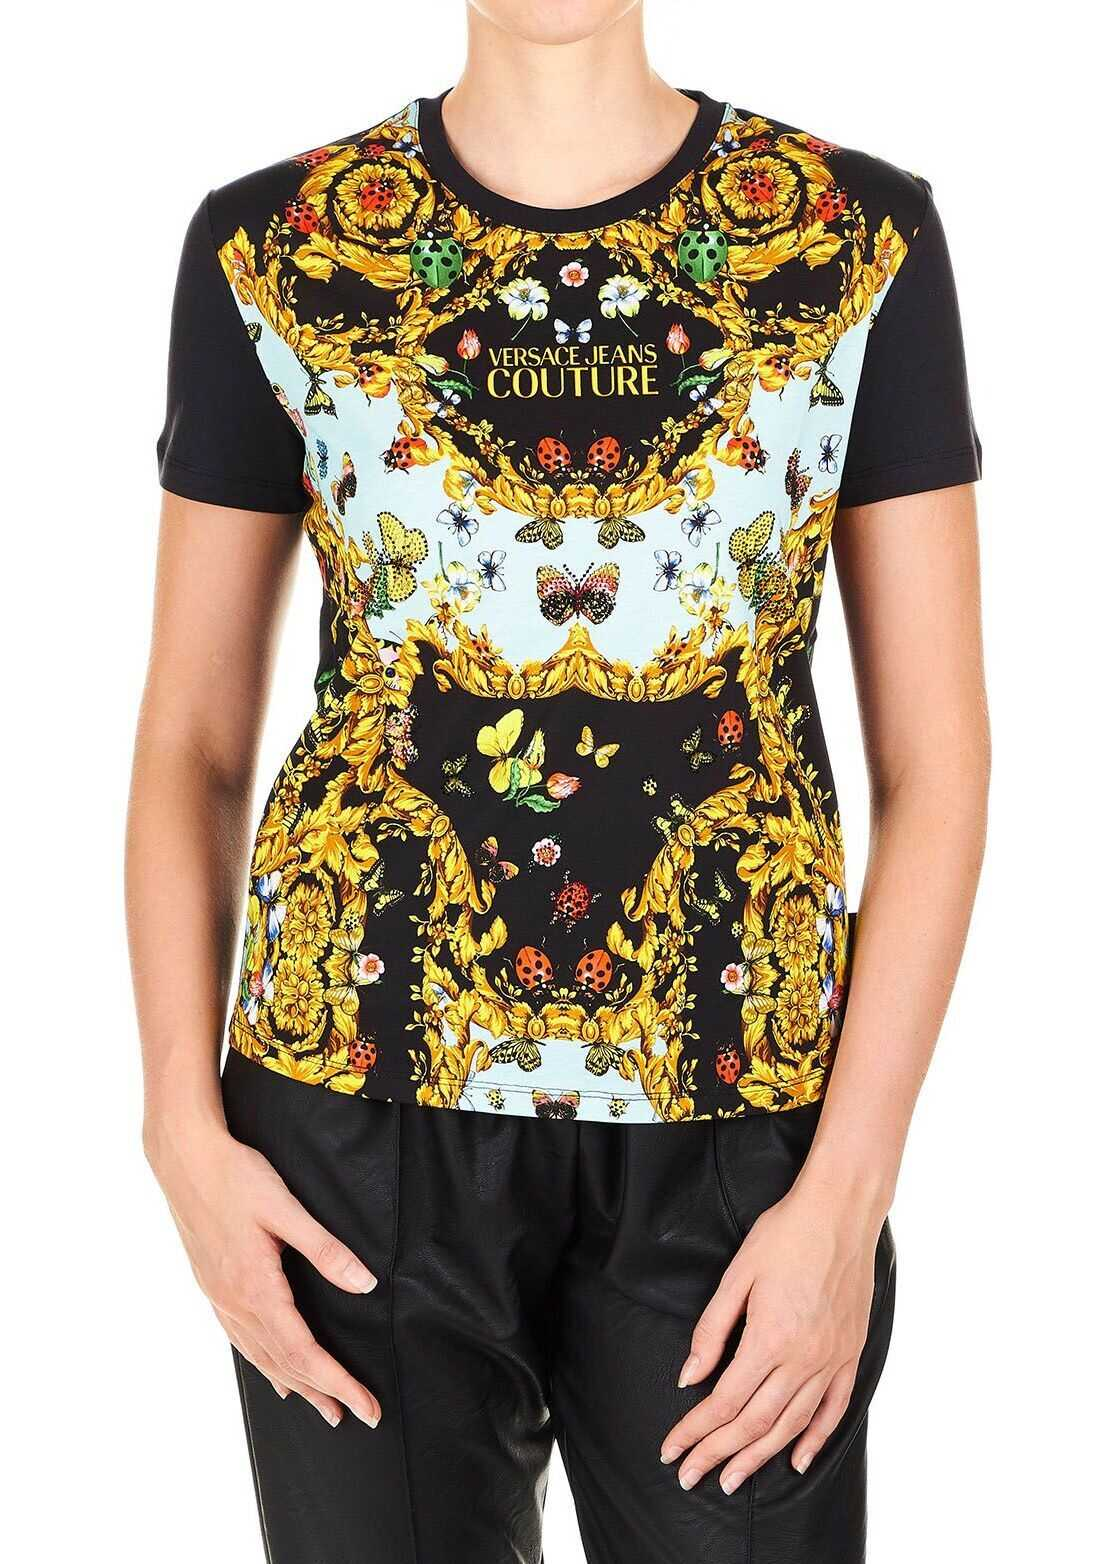 Versace Jeans Cotton T-Shirt BLACK